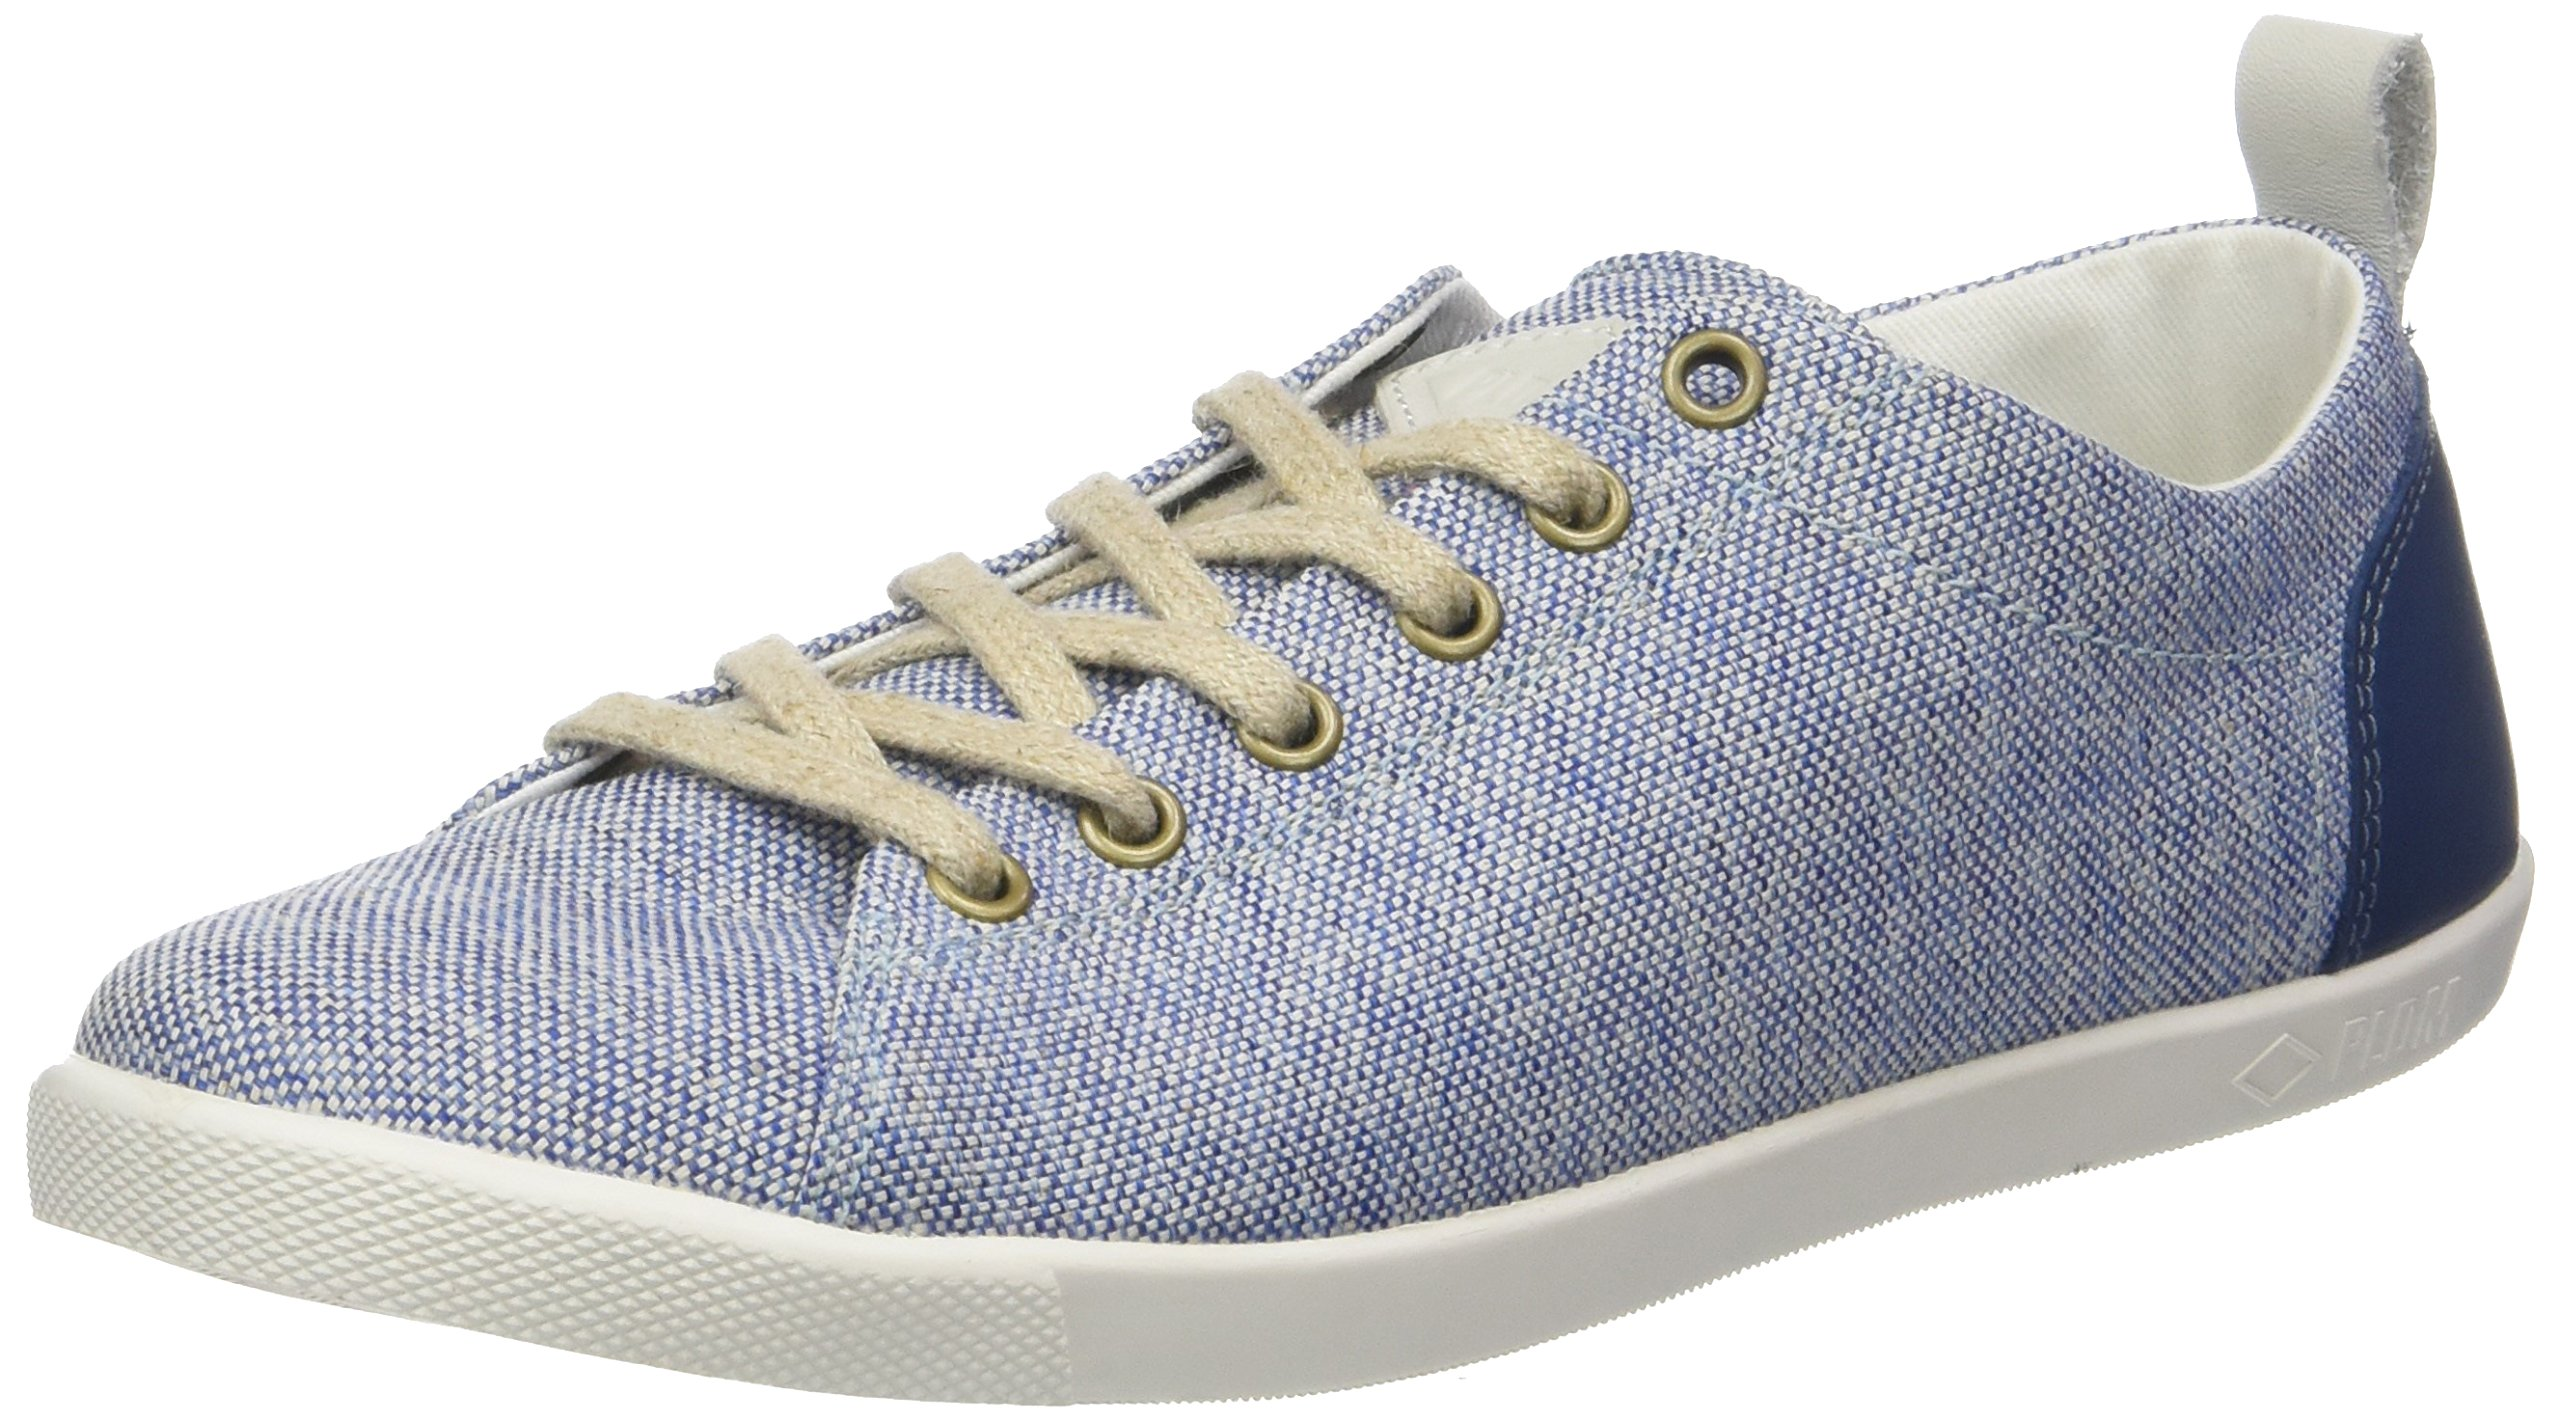 TxtBaskets By Basses Bel FemmeBleublue38 Pldm Palladium Eu CExBQderoW